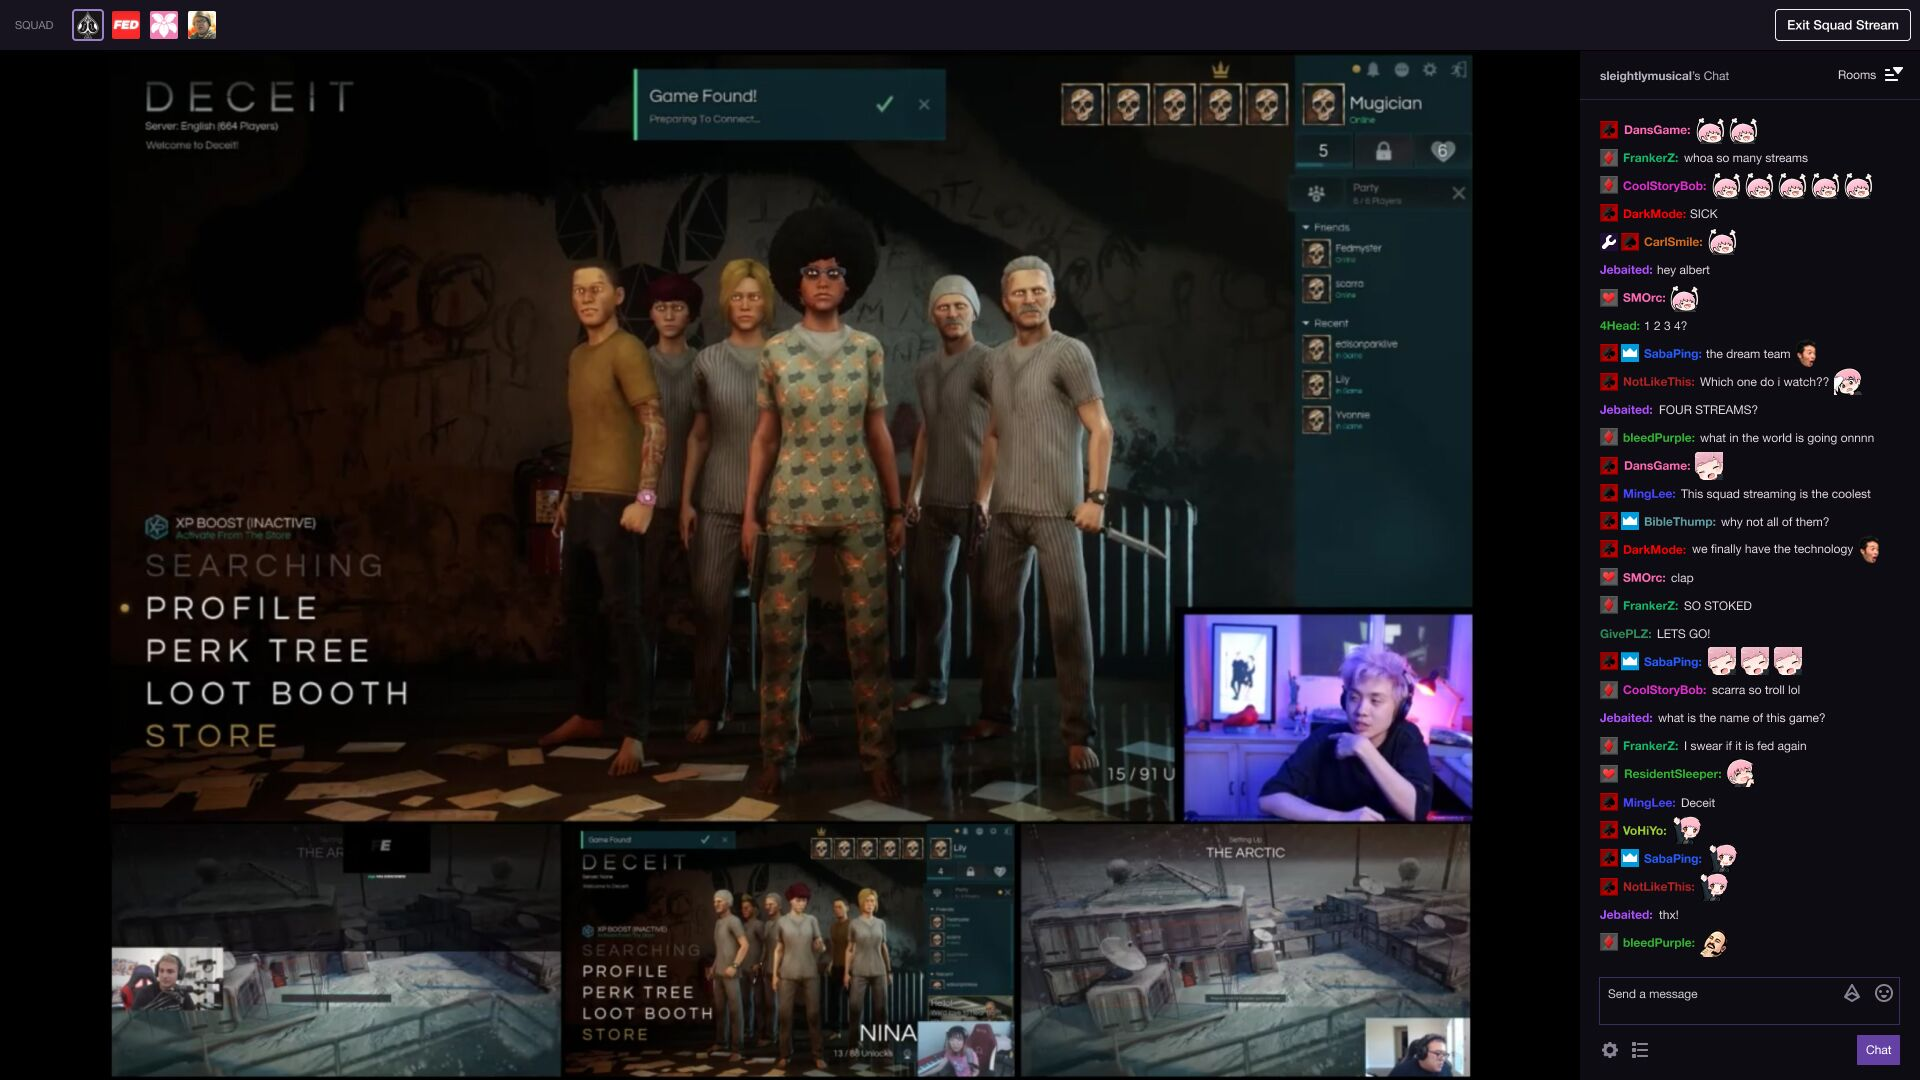 Twitch announces Twitch Squad Stream, Twitch Sings, and